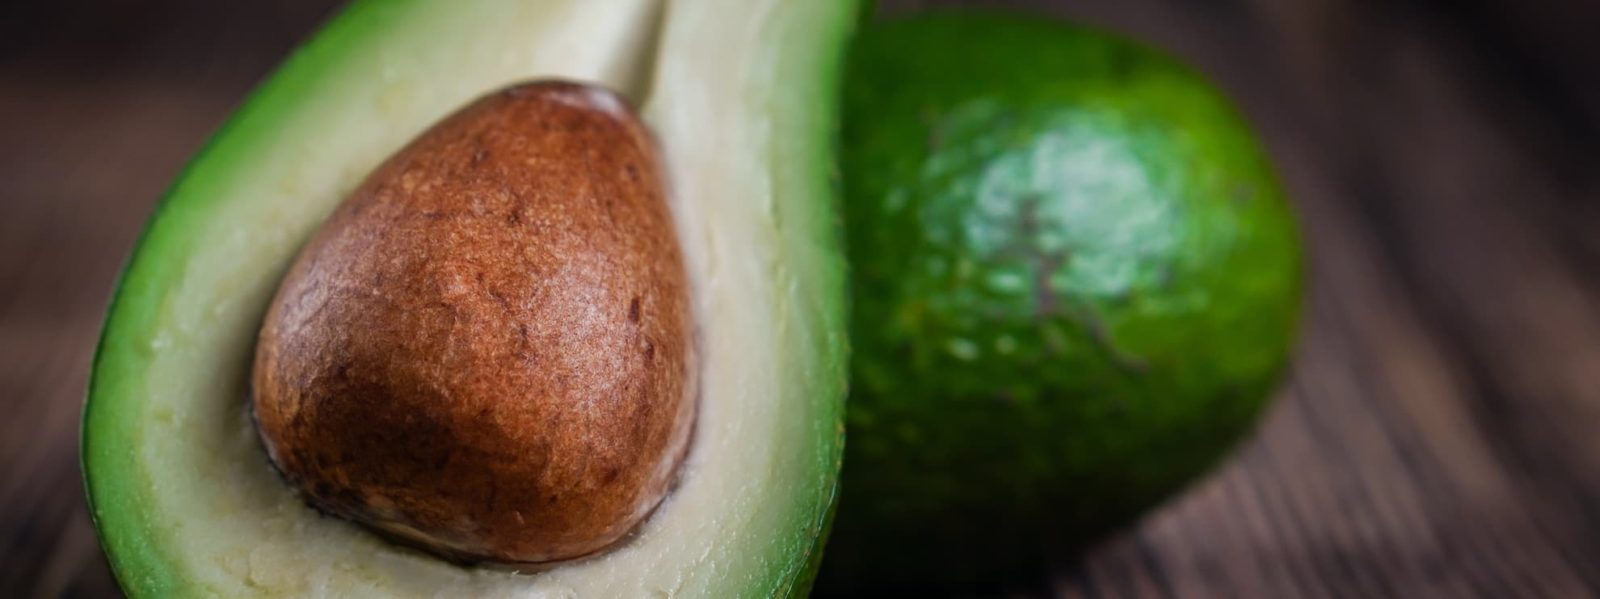 an avocado sliced in half showing its stone